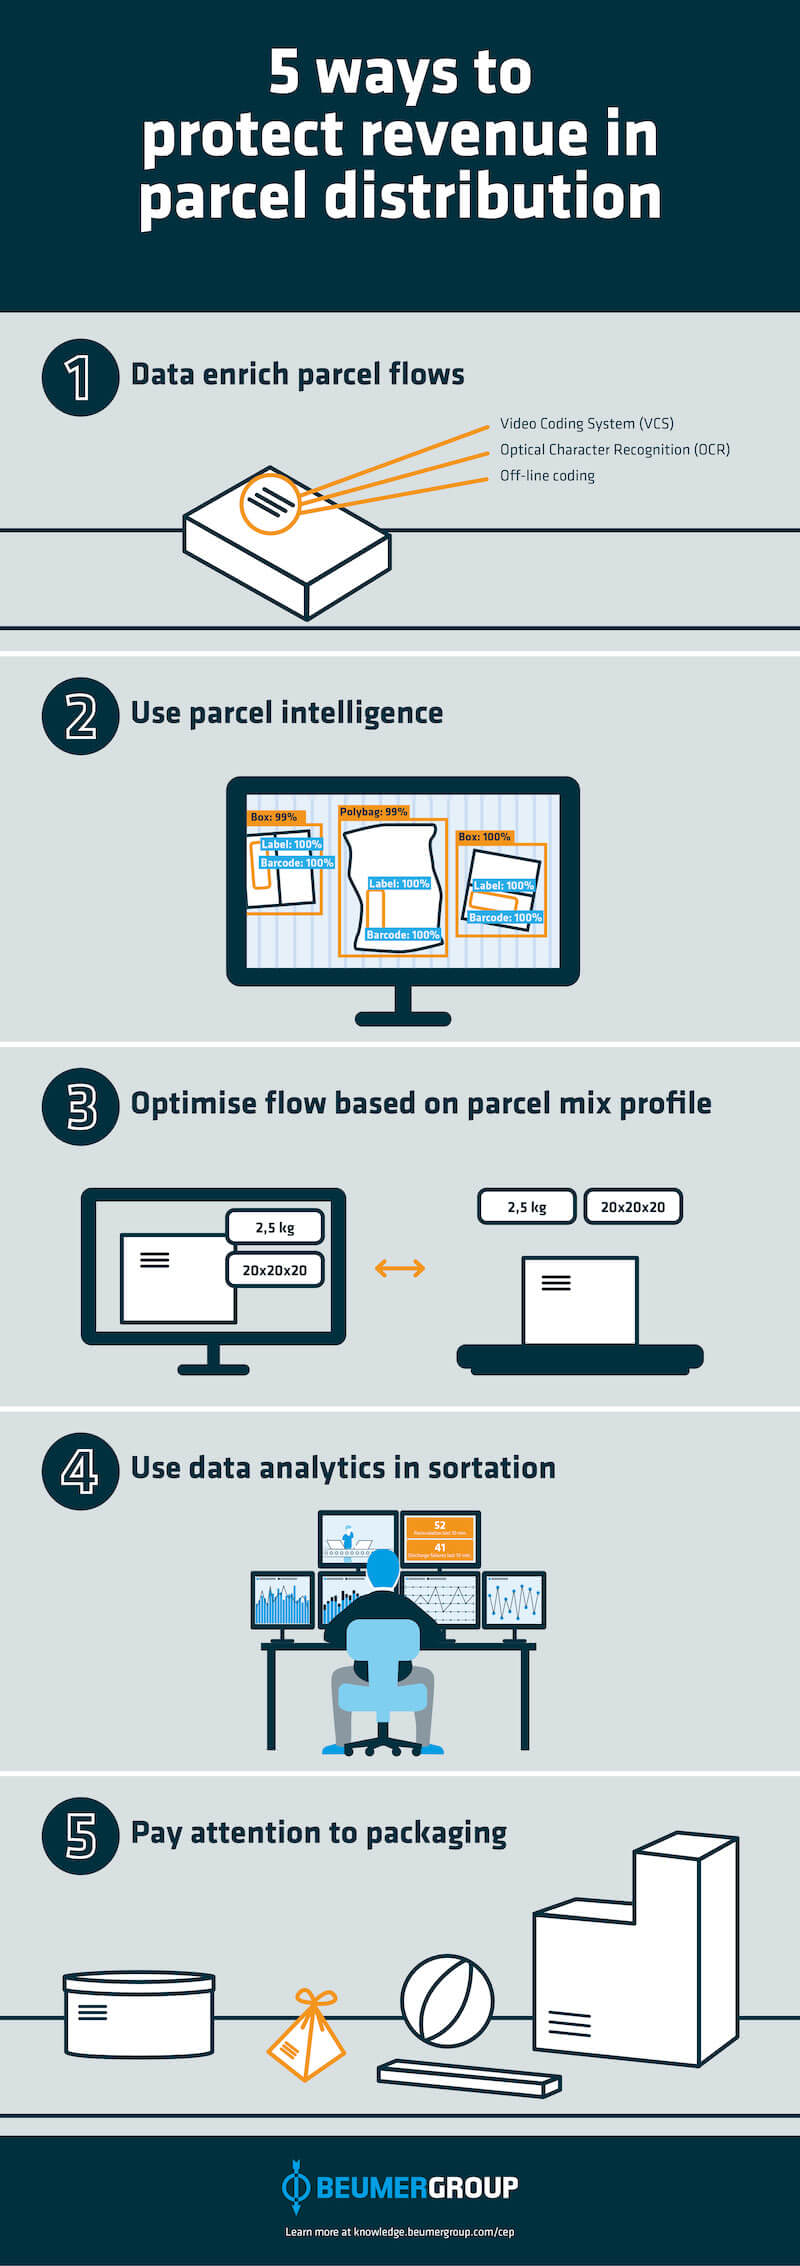 5 ways to protect revenue in parcel distribution: 1) Data enrich parcel flows, 2) Use parcel intelligence, 3) Optimise flow based on parcel mix projections, 4) Use data analytics in sortation, 5) Pay attention to packaging